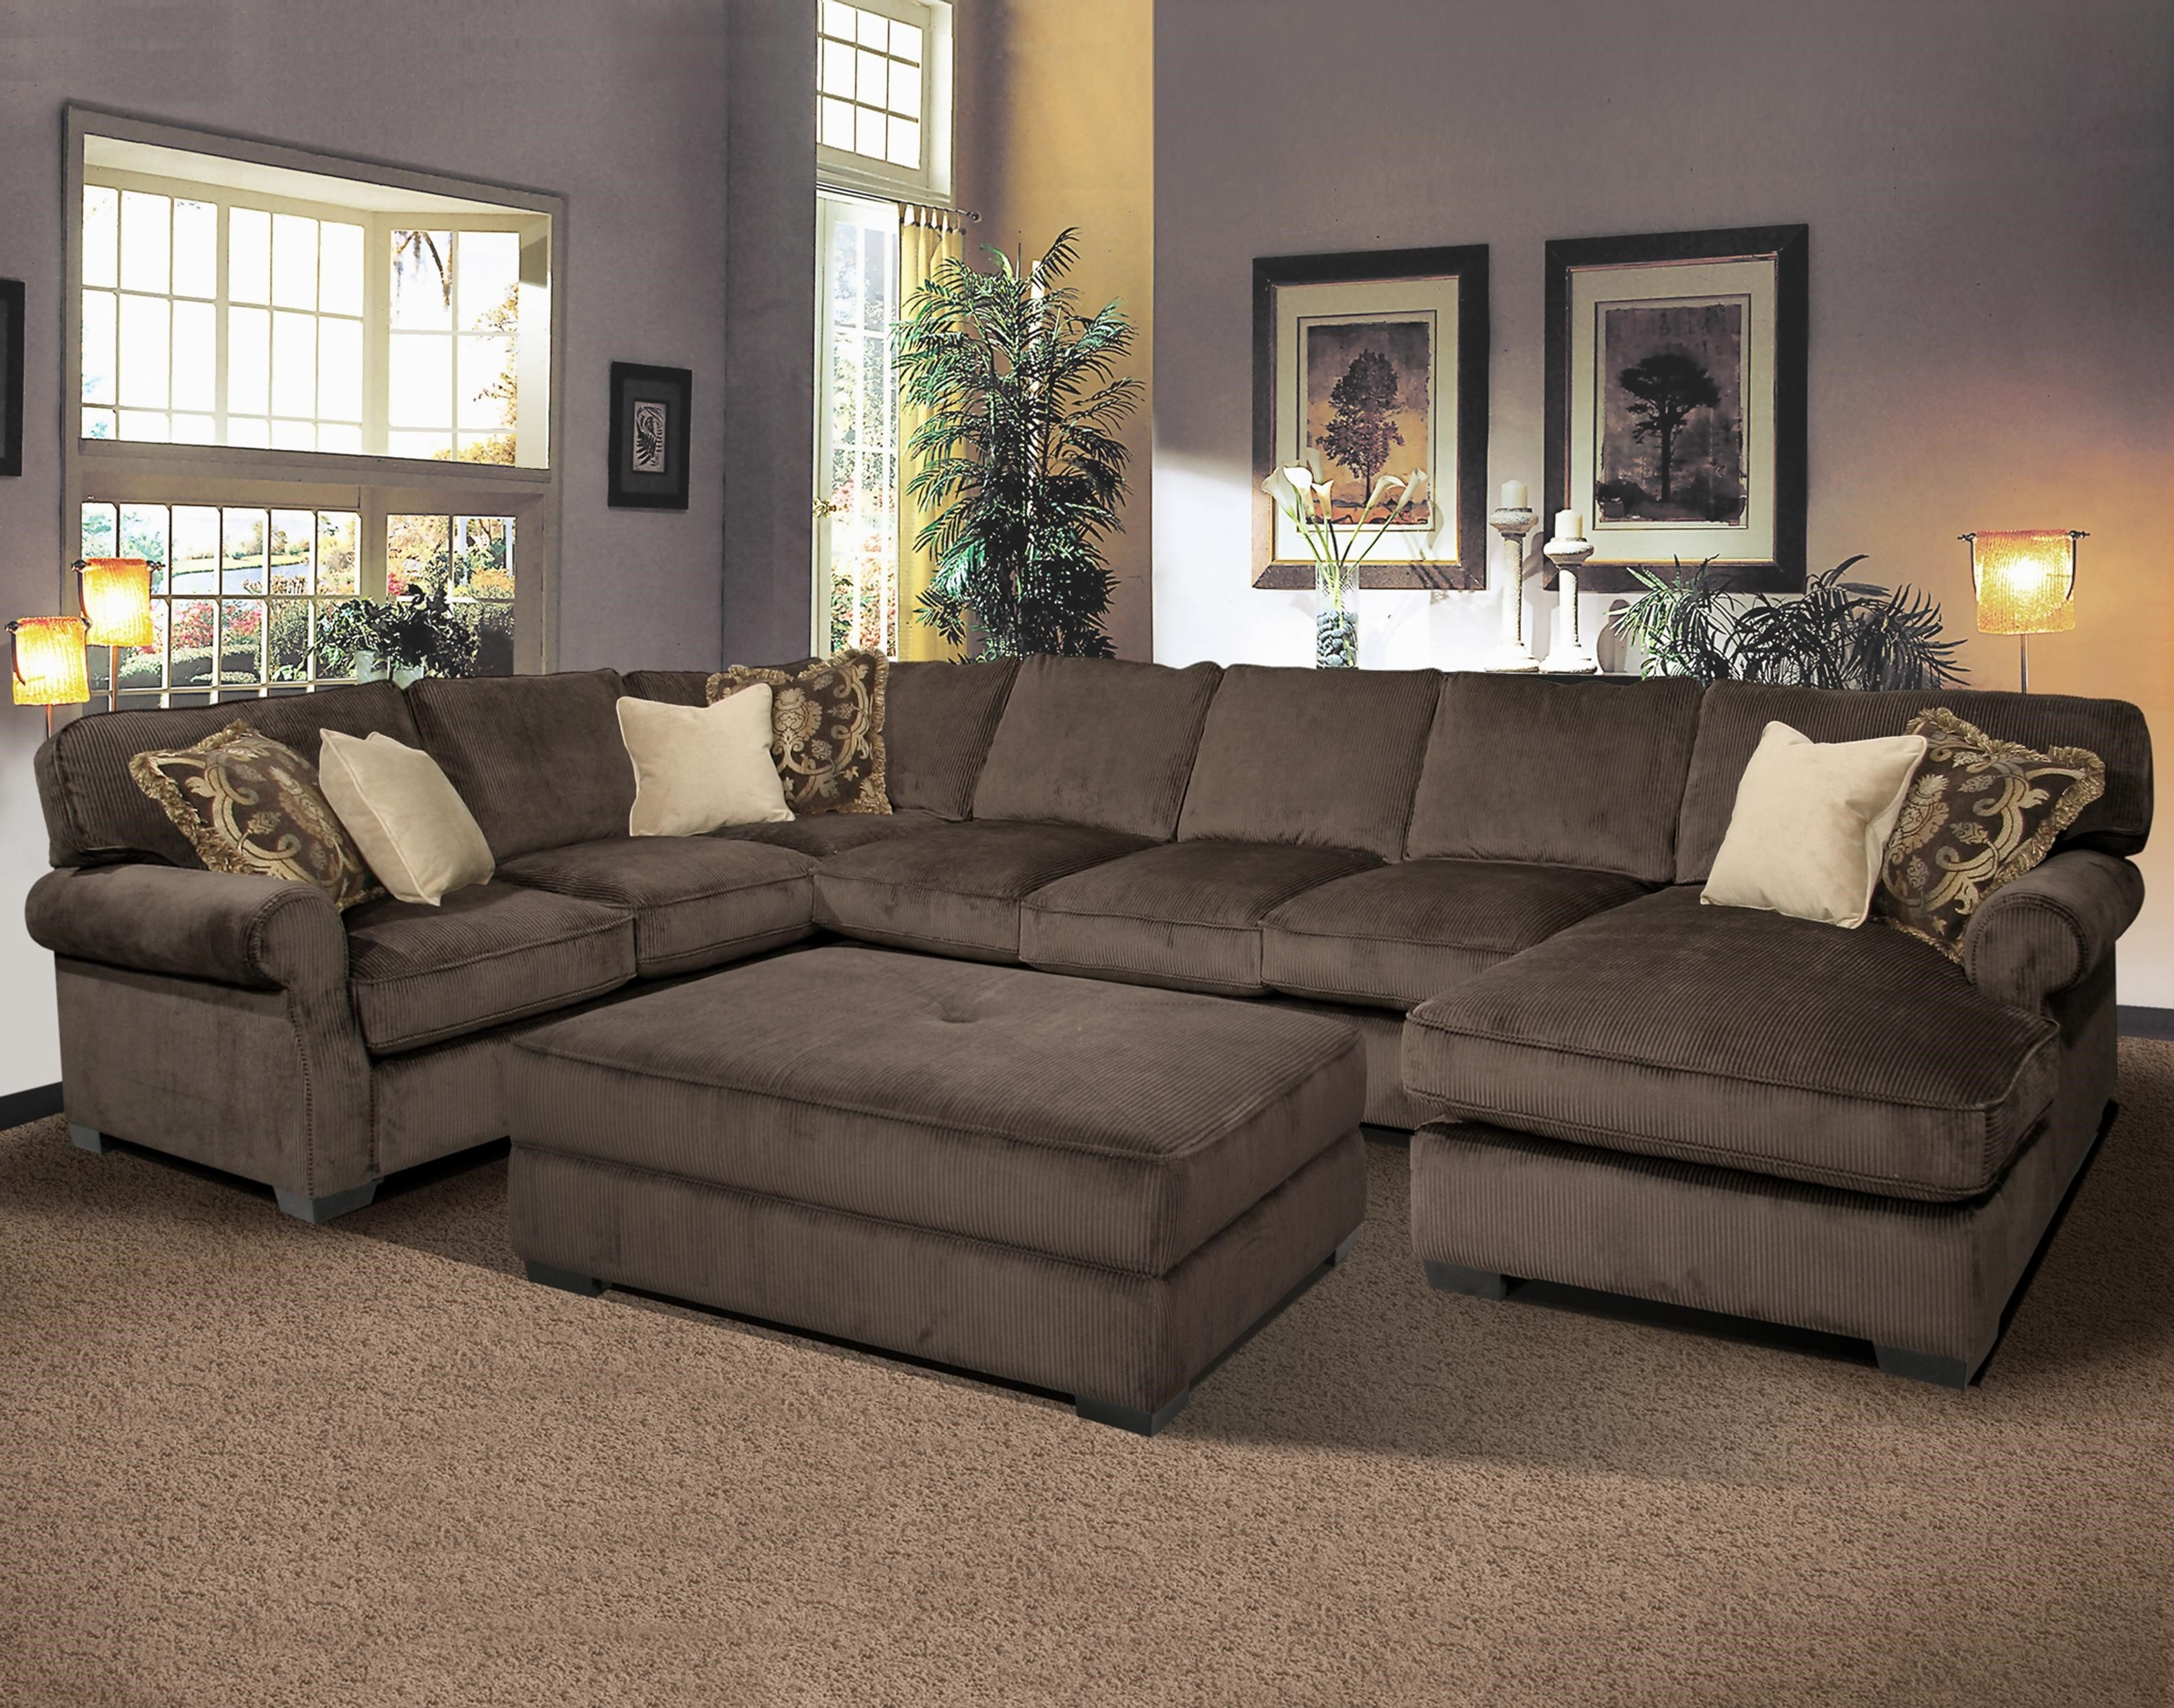 Down Sectional Sofas Pertaining To Best And Newest Comfortable Living Room Sofas Design With Elegant Overstuffed (Gallery 7 of 20)